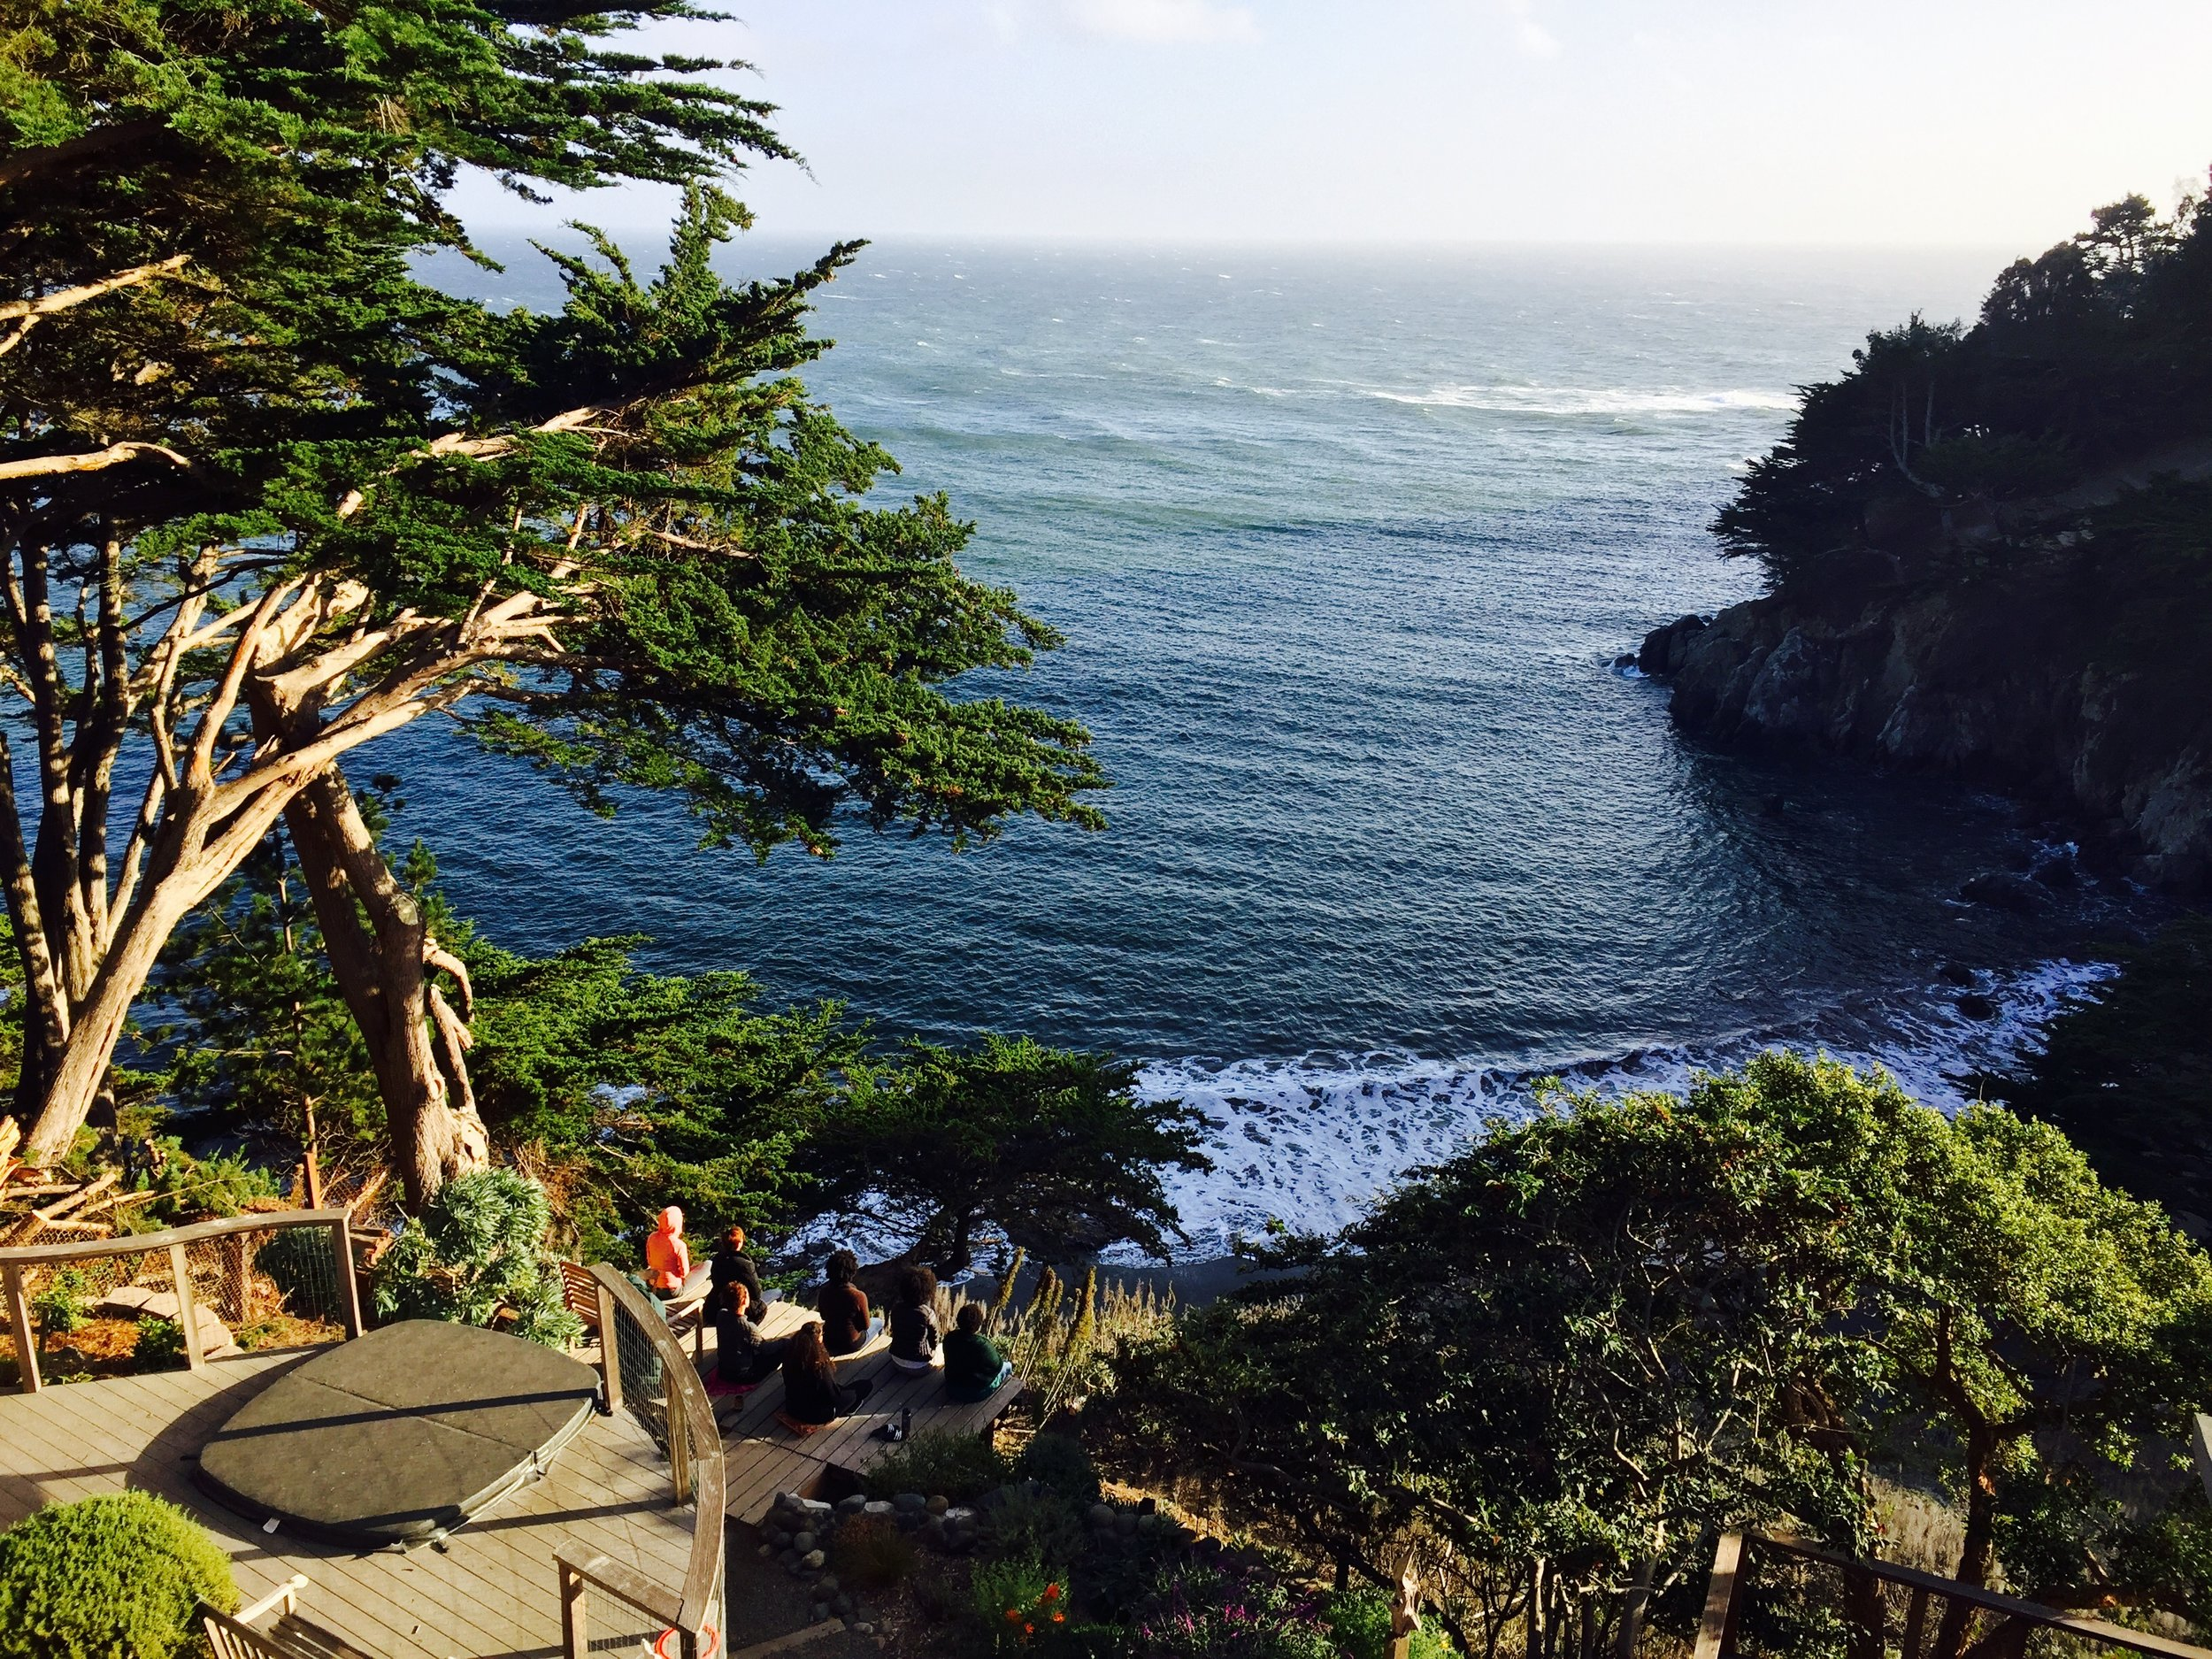 Dive Deep Writing Retreat at Muir Beach - Sunday, October 13th, 9:30am-4:30pmExplore your story surrounded by the beauty and wildness Muir Beach in a retreat space overlooking the ocean. This day-long workshop includes space for going deep into your writing practice in a safe and supportive environment. The day includes time for rest, exploring nature, meditation, and set yourself up the next step on your writing. For details and to register email: writeyourwaytofreedom@gmail.com